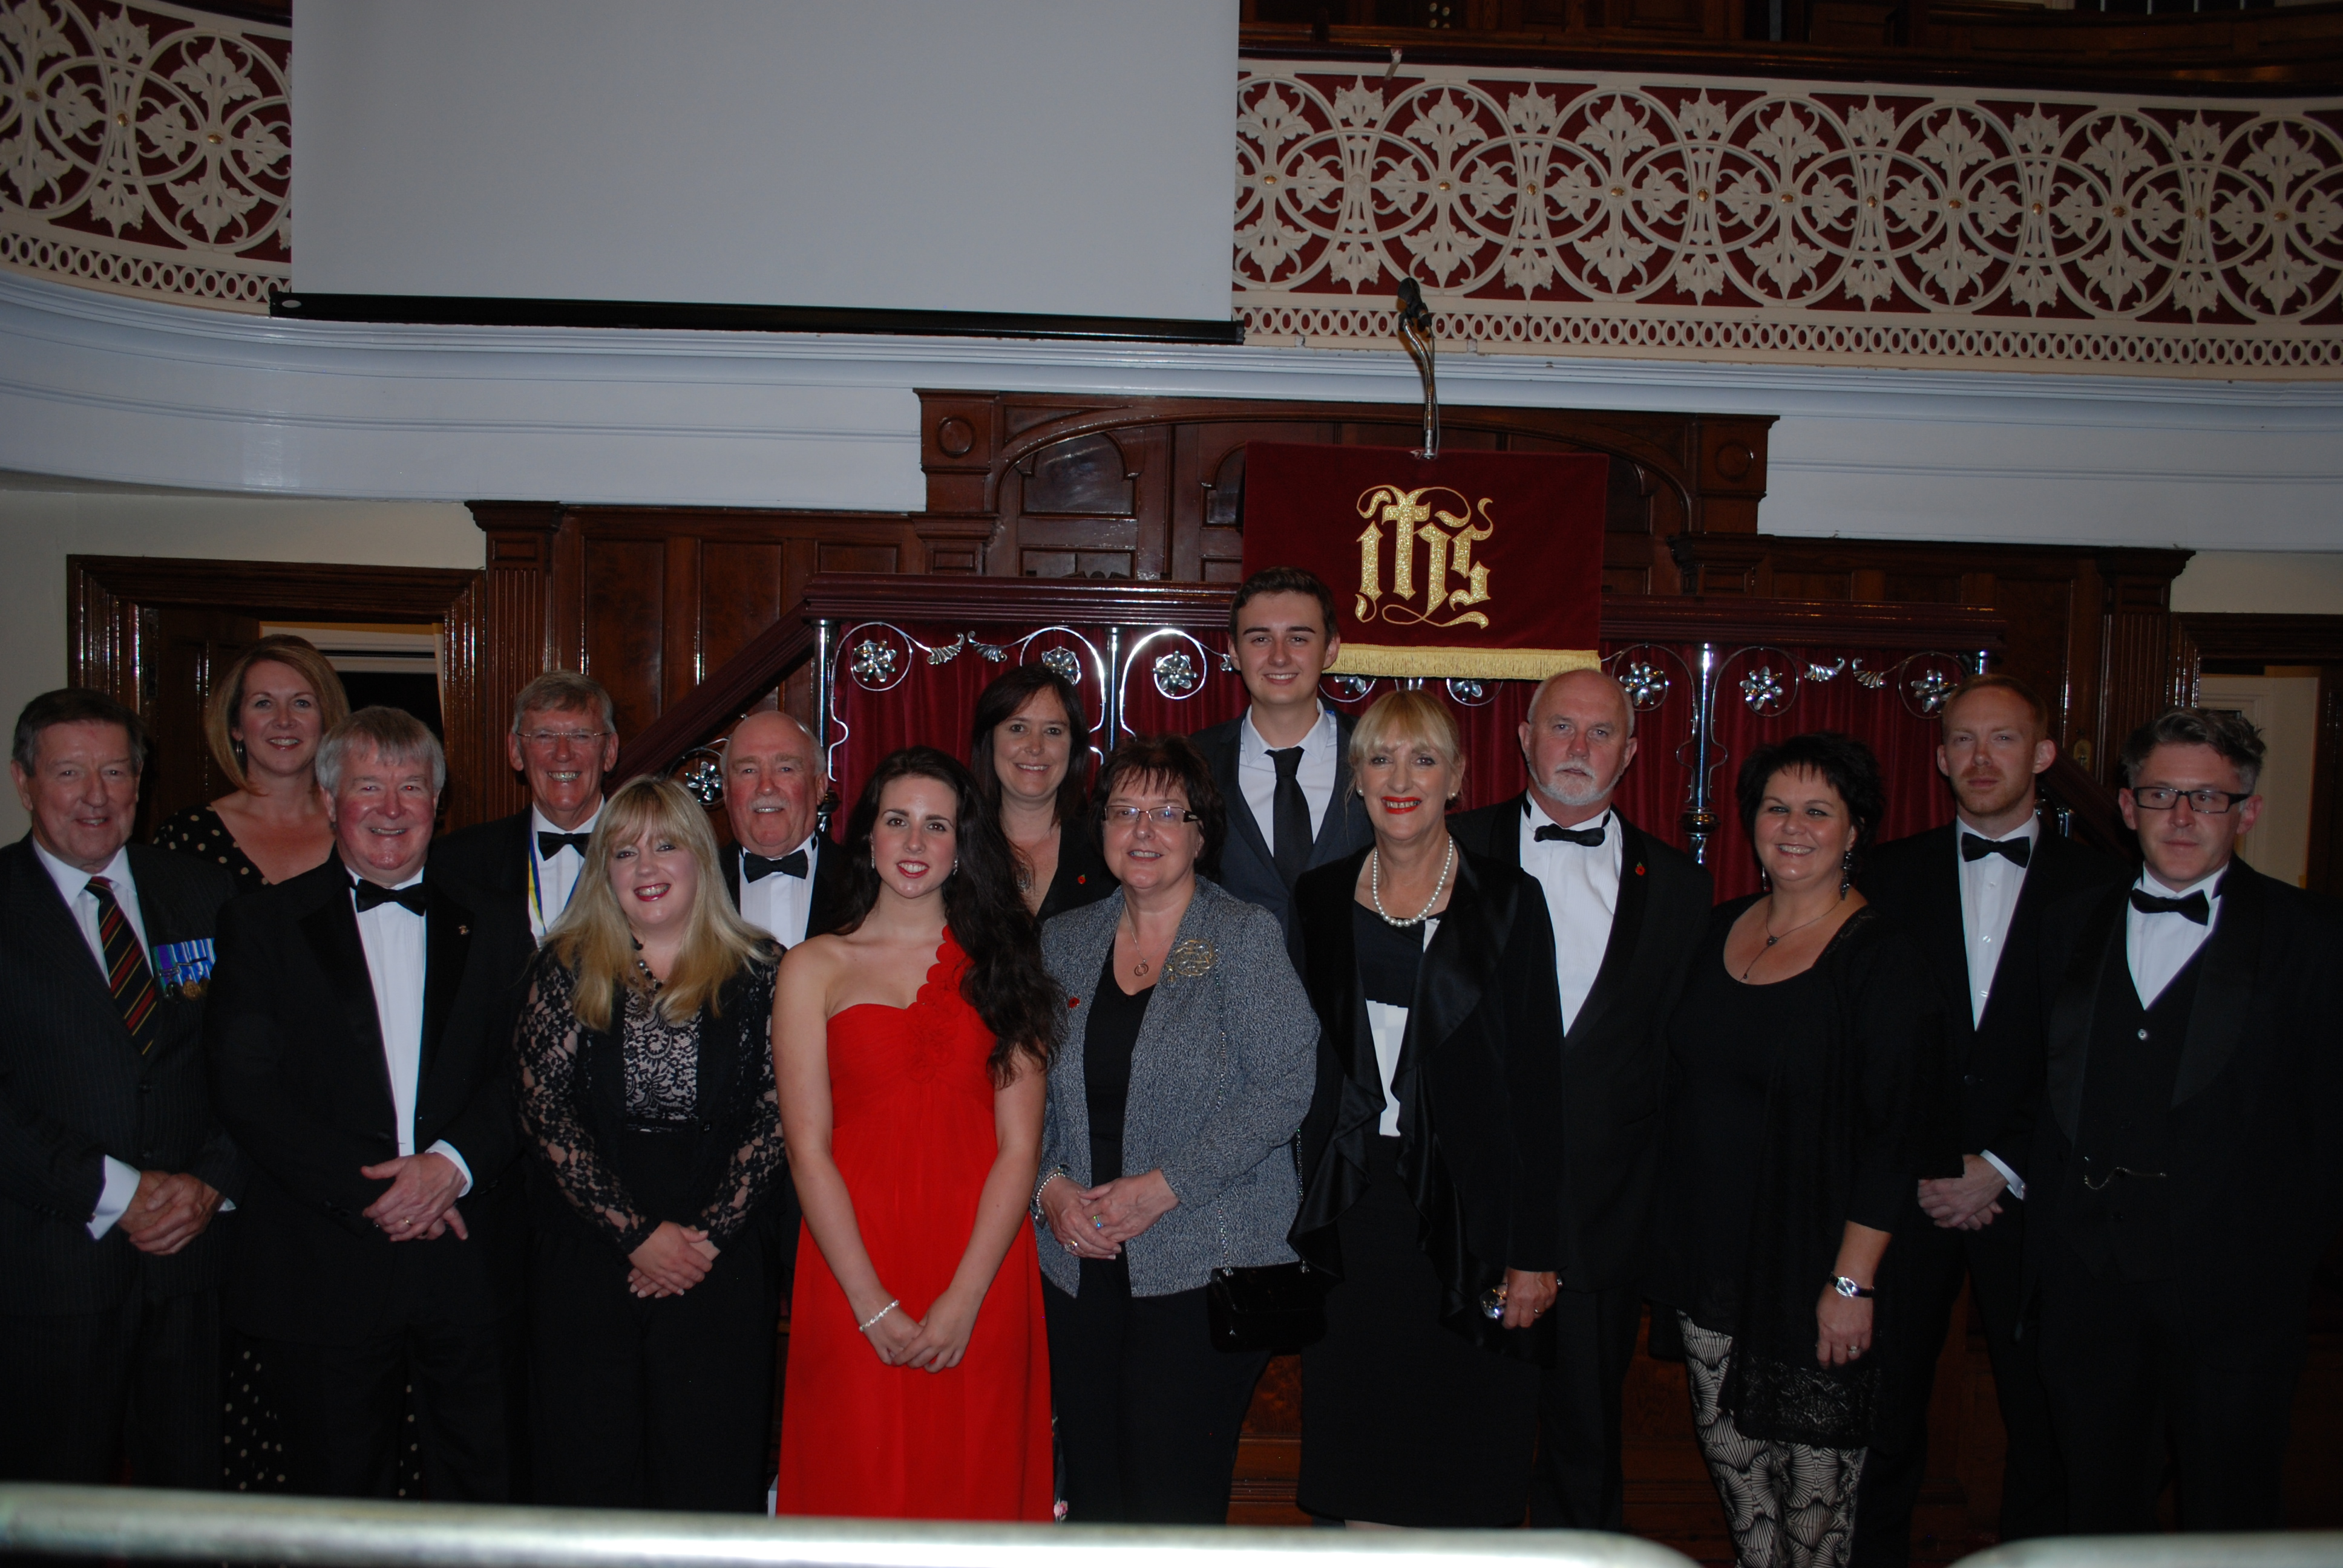 Rotary Artists and members of Llanelli Rotary Club